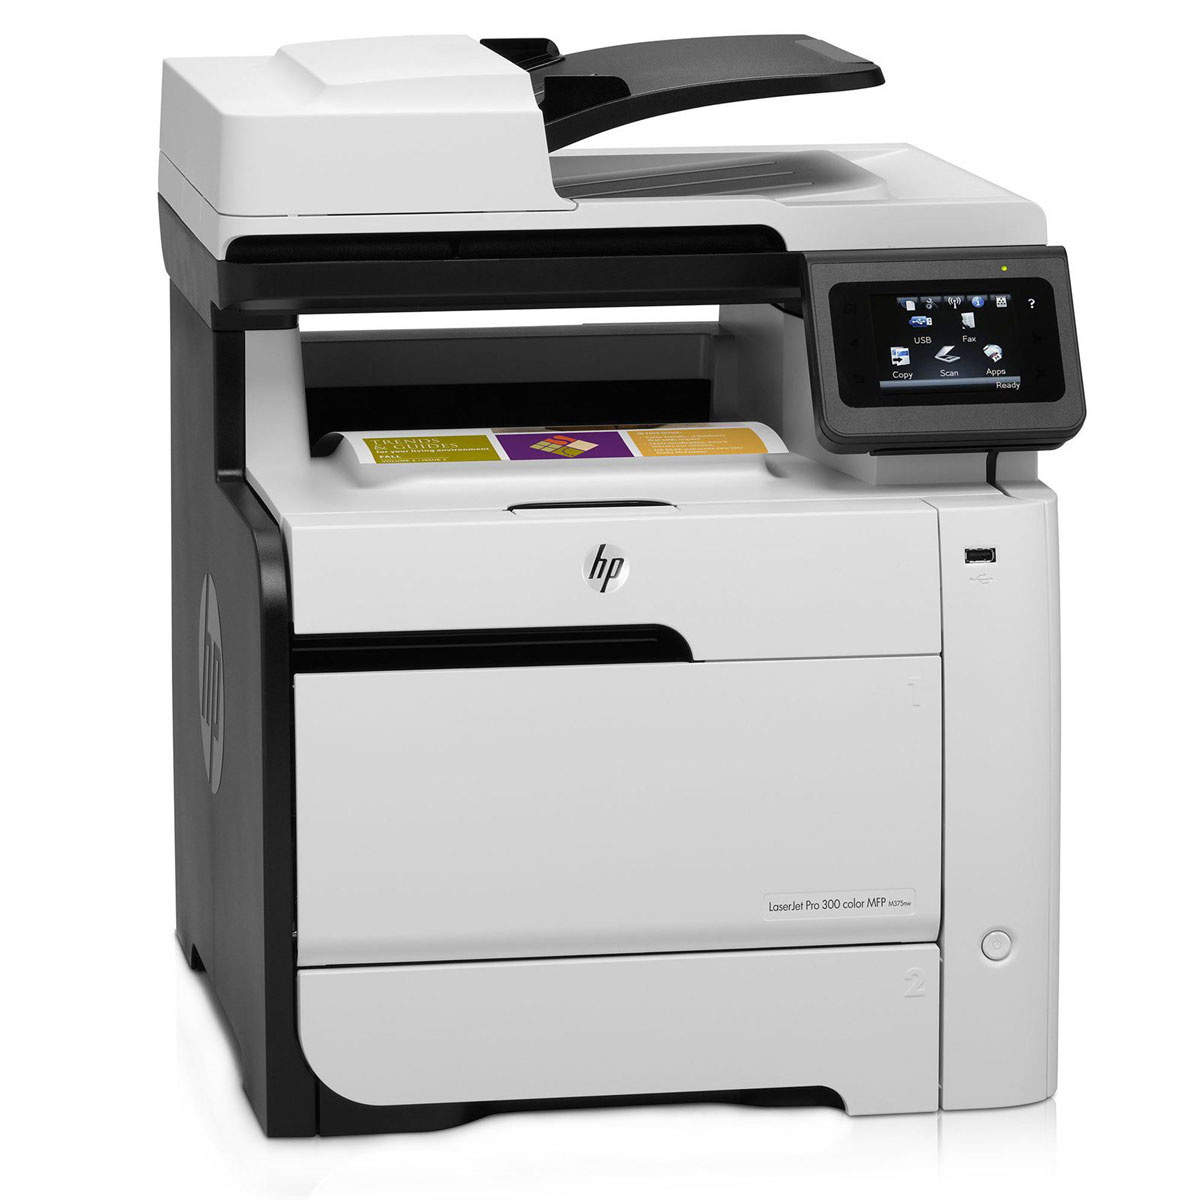 hp laserjet pro 300 color mfp m375nw ce903a imprimante. Black Bedroom Furniture Sets. Home Design Ideas